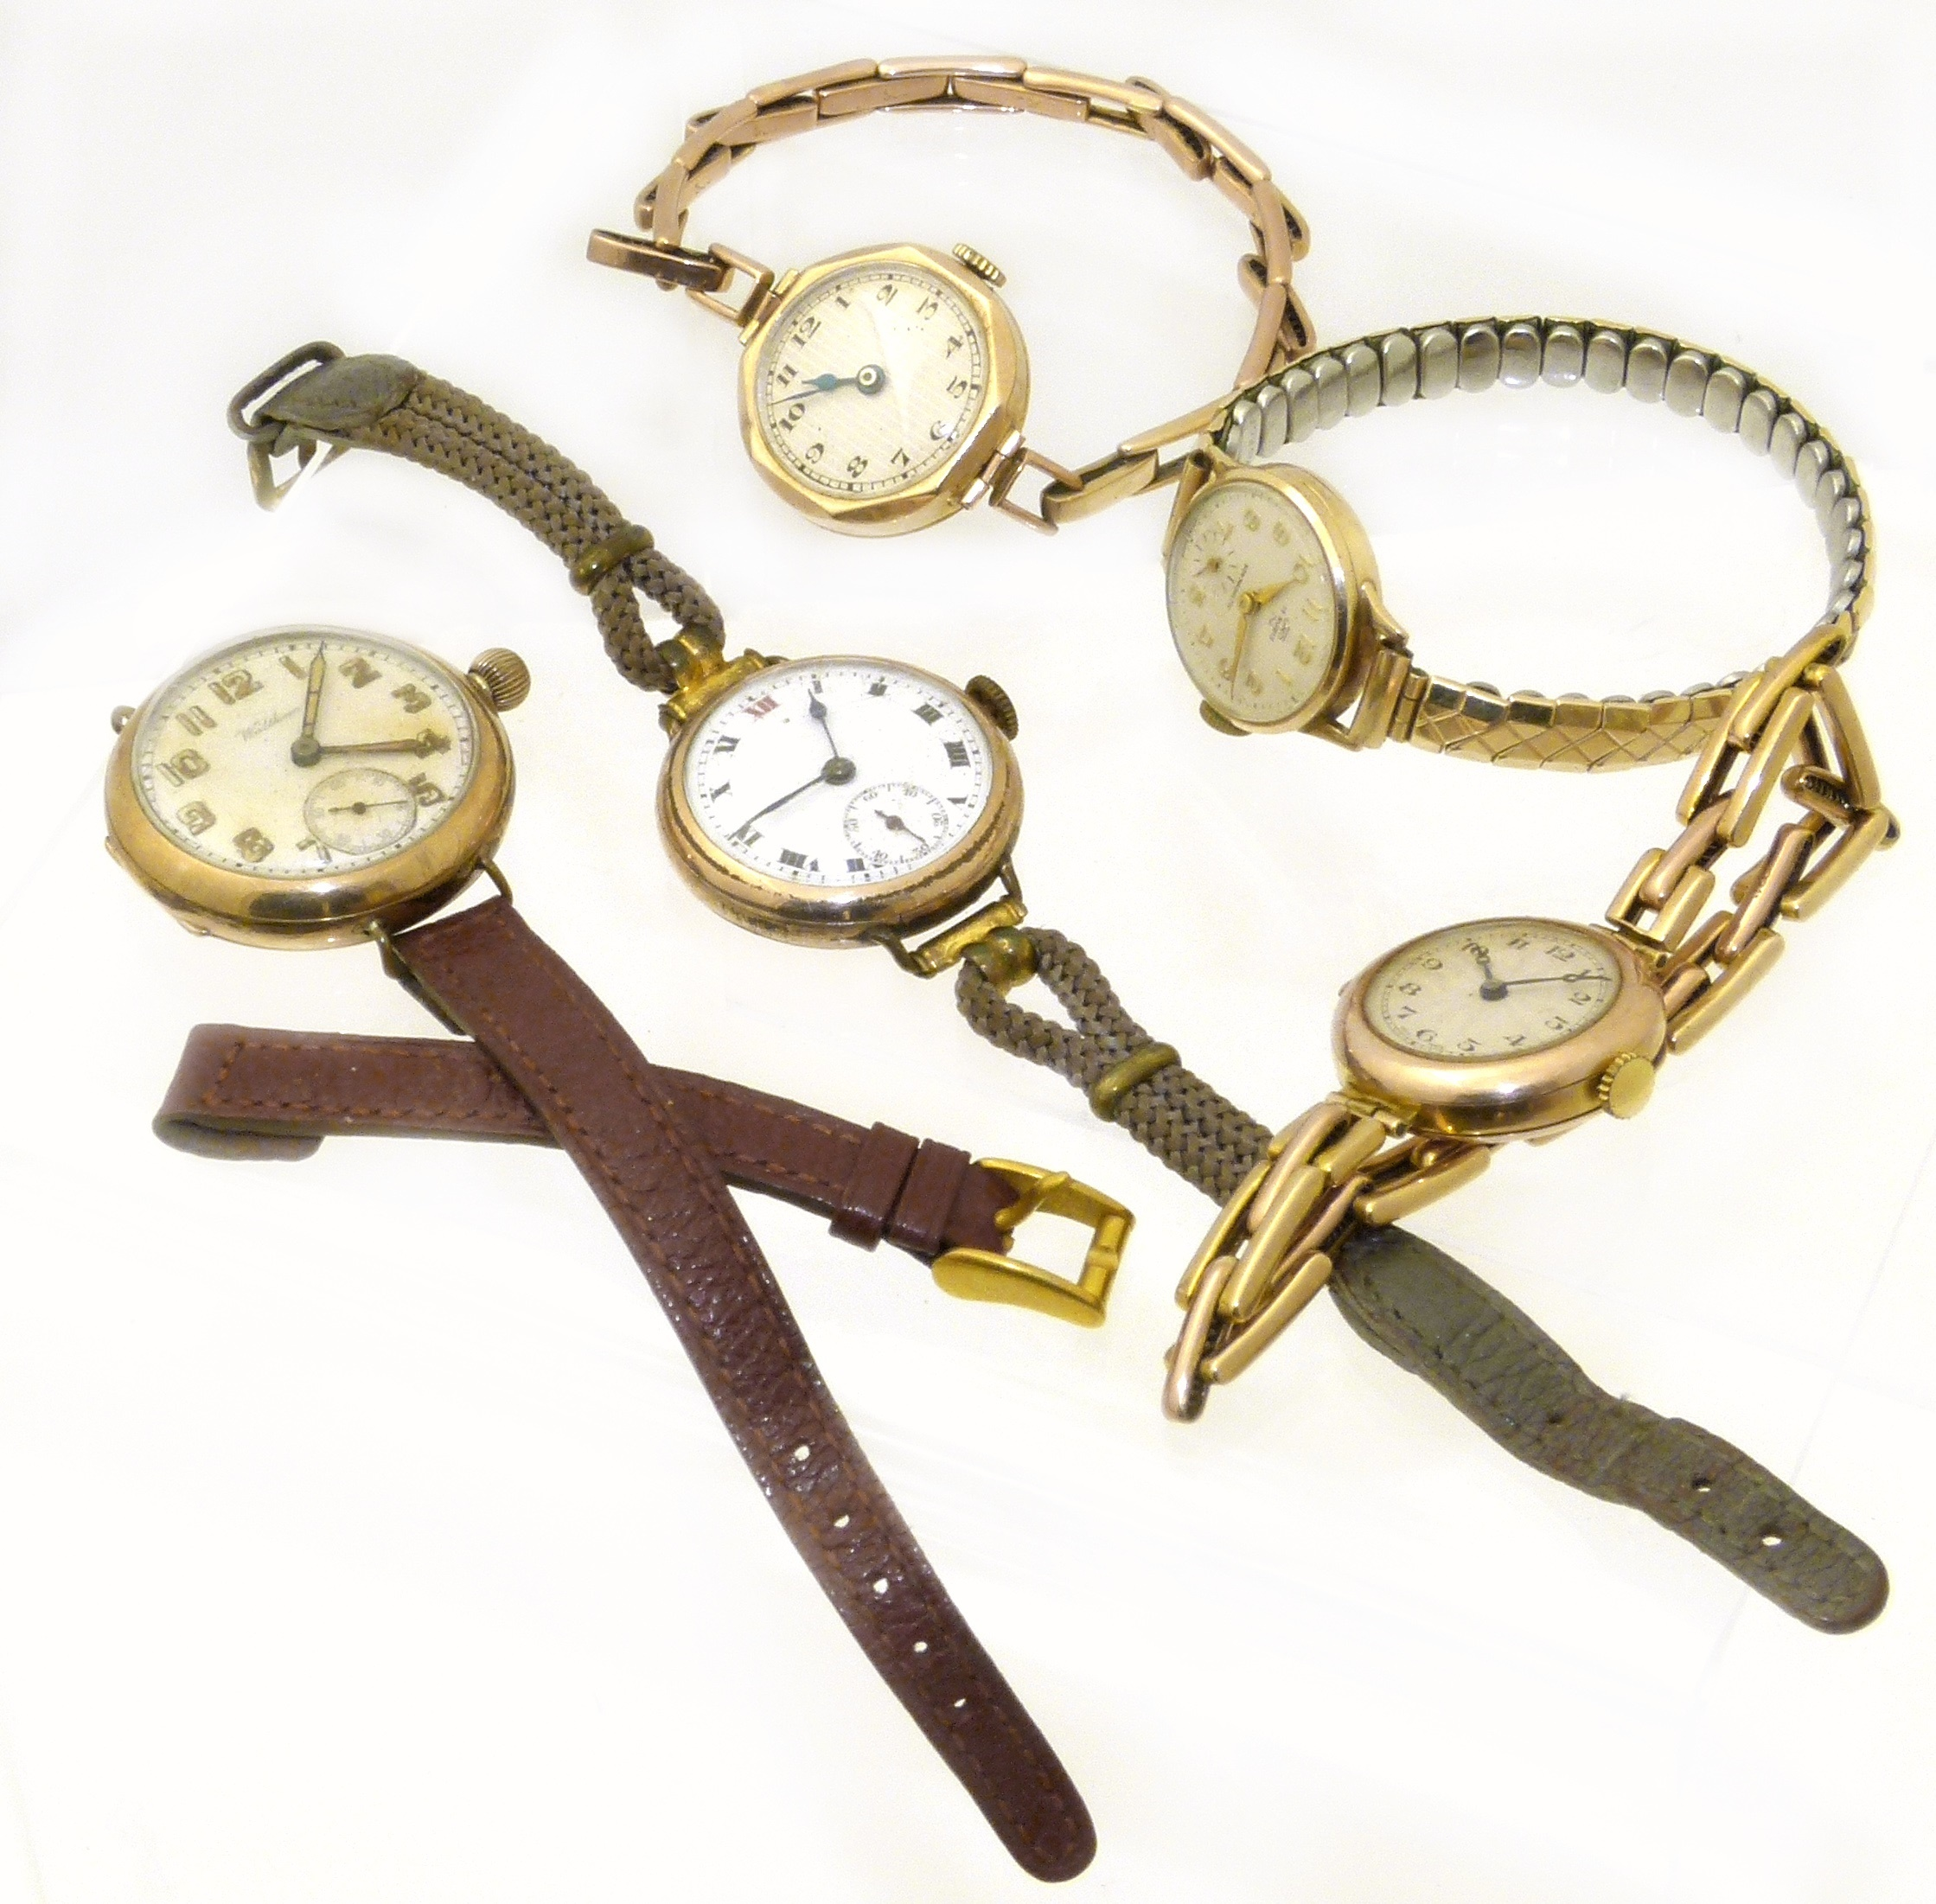 Three 9ct gold cased watches and two plated watches, to include a 9ct gold cased Uno wristwatch, two further 9ct gold cased wristwatches, a gold plated Waltham wristwatch and one other